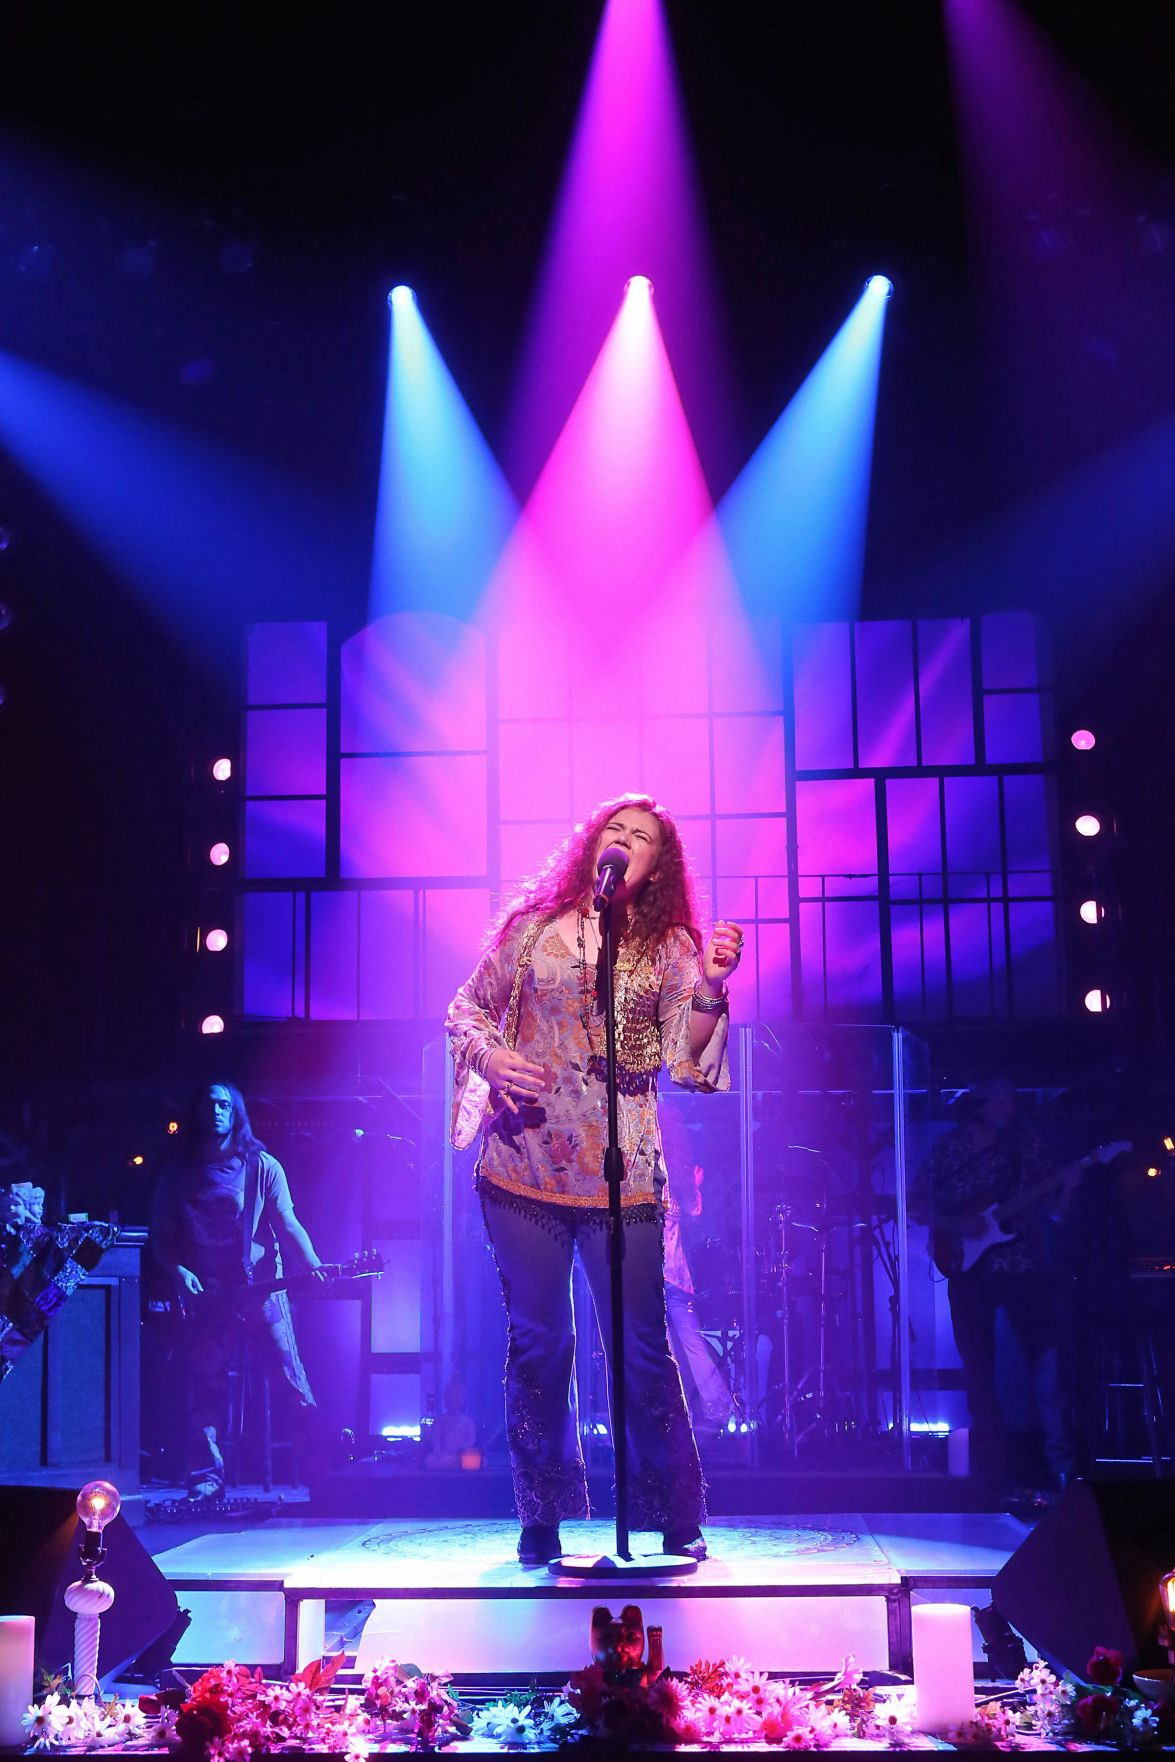 THE FRONT ROW: A Night with Janis Joplin